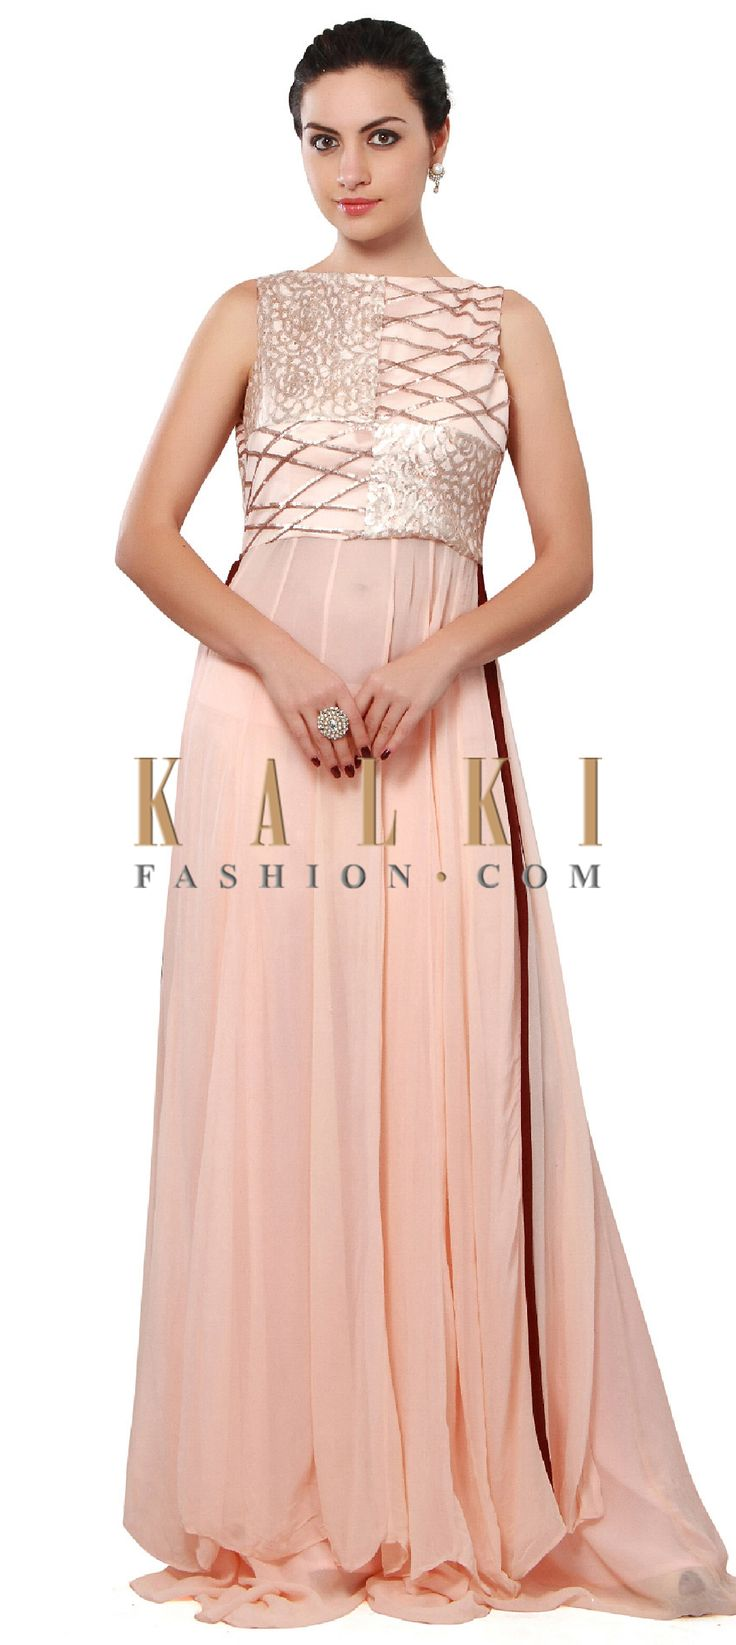 Buy Online from the link below. We ship worldwide (Free Shipping over US$100). Product SKU - 301229. Product Price - $309.00. Product link - http://www.kalkifashion.com/peach-suit-adorn-in-sequin-embellished-yoke-only-on-kalki.html